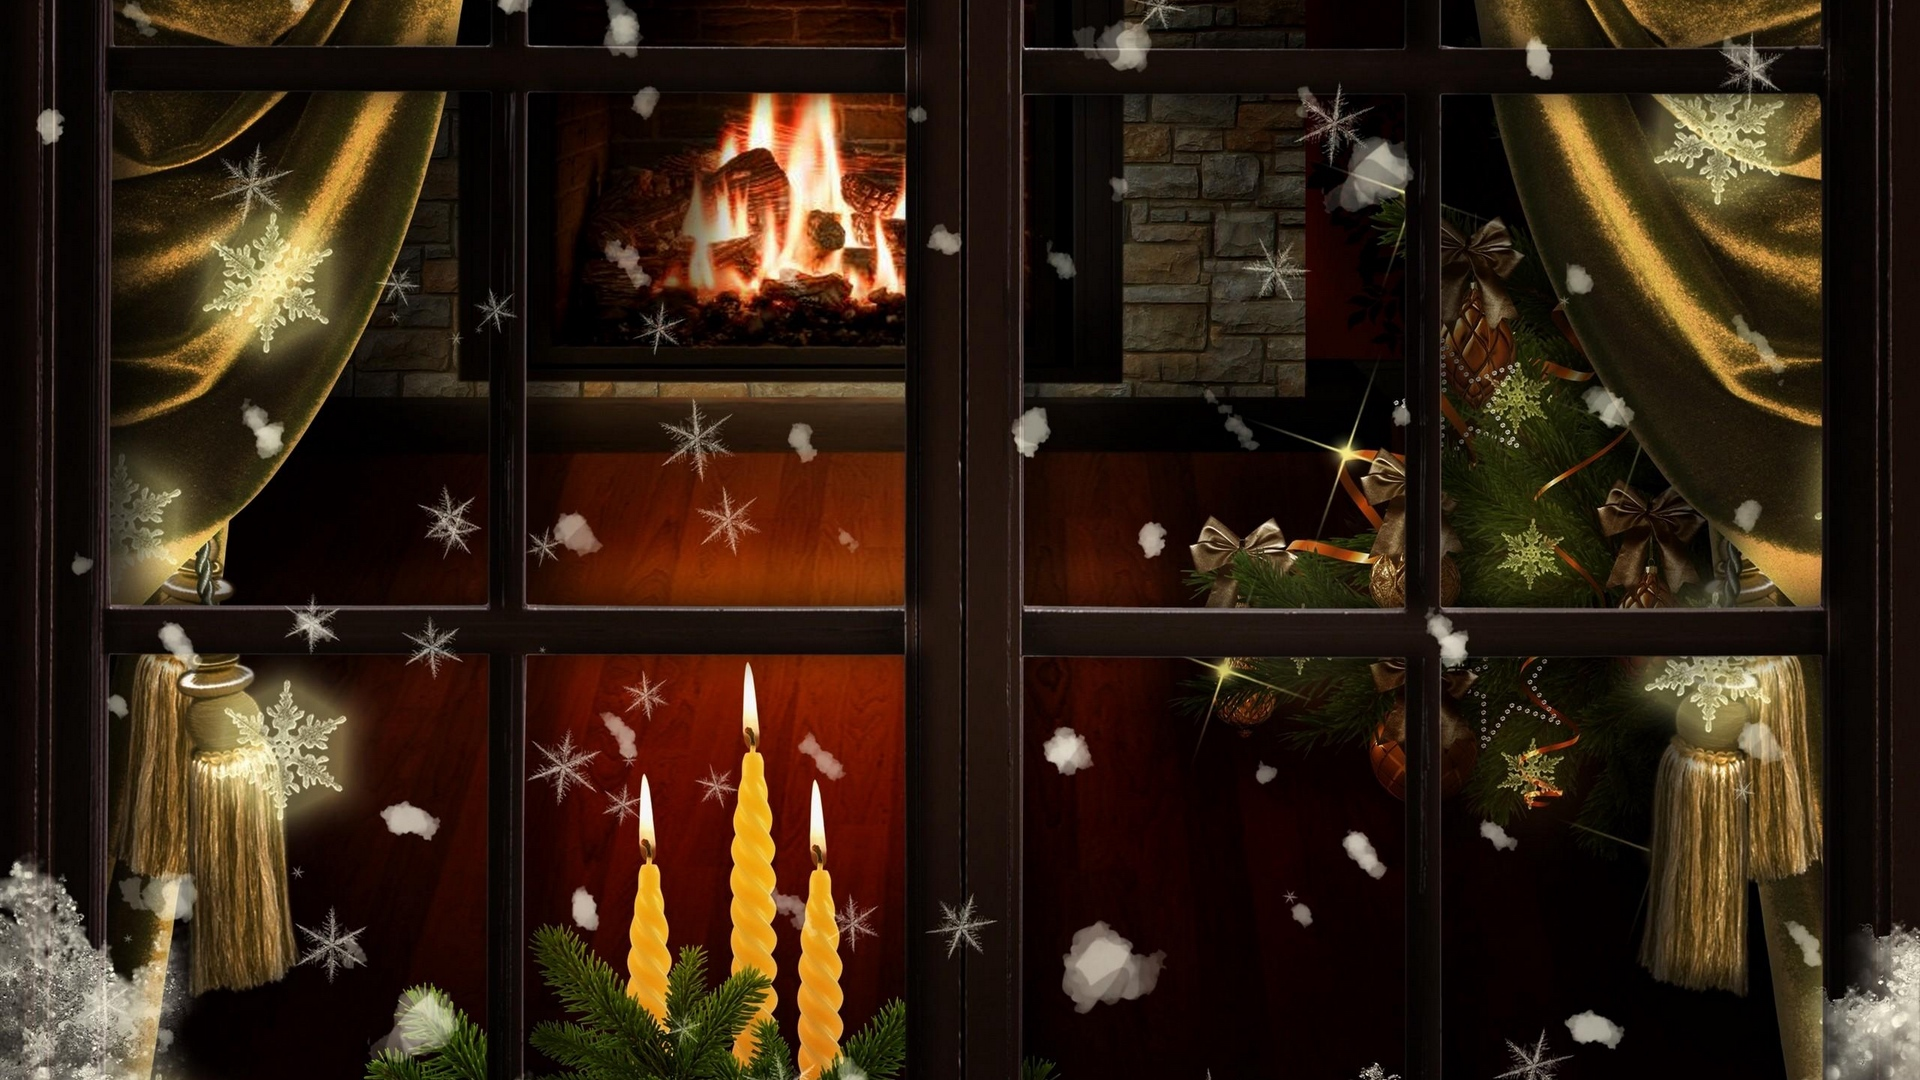 window fireplace candles christmas tree cozy christmas x